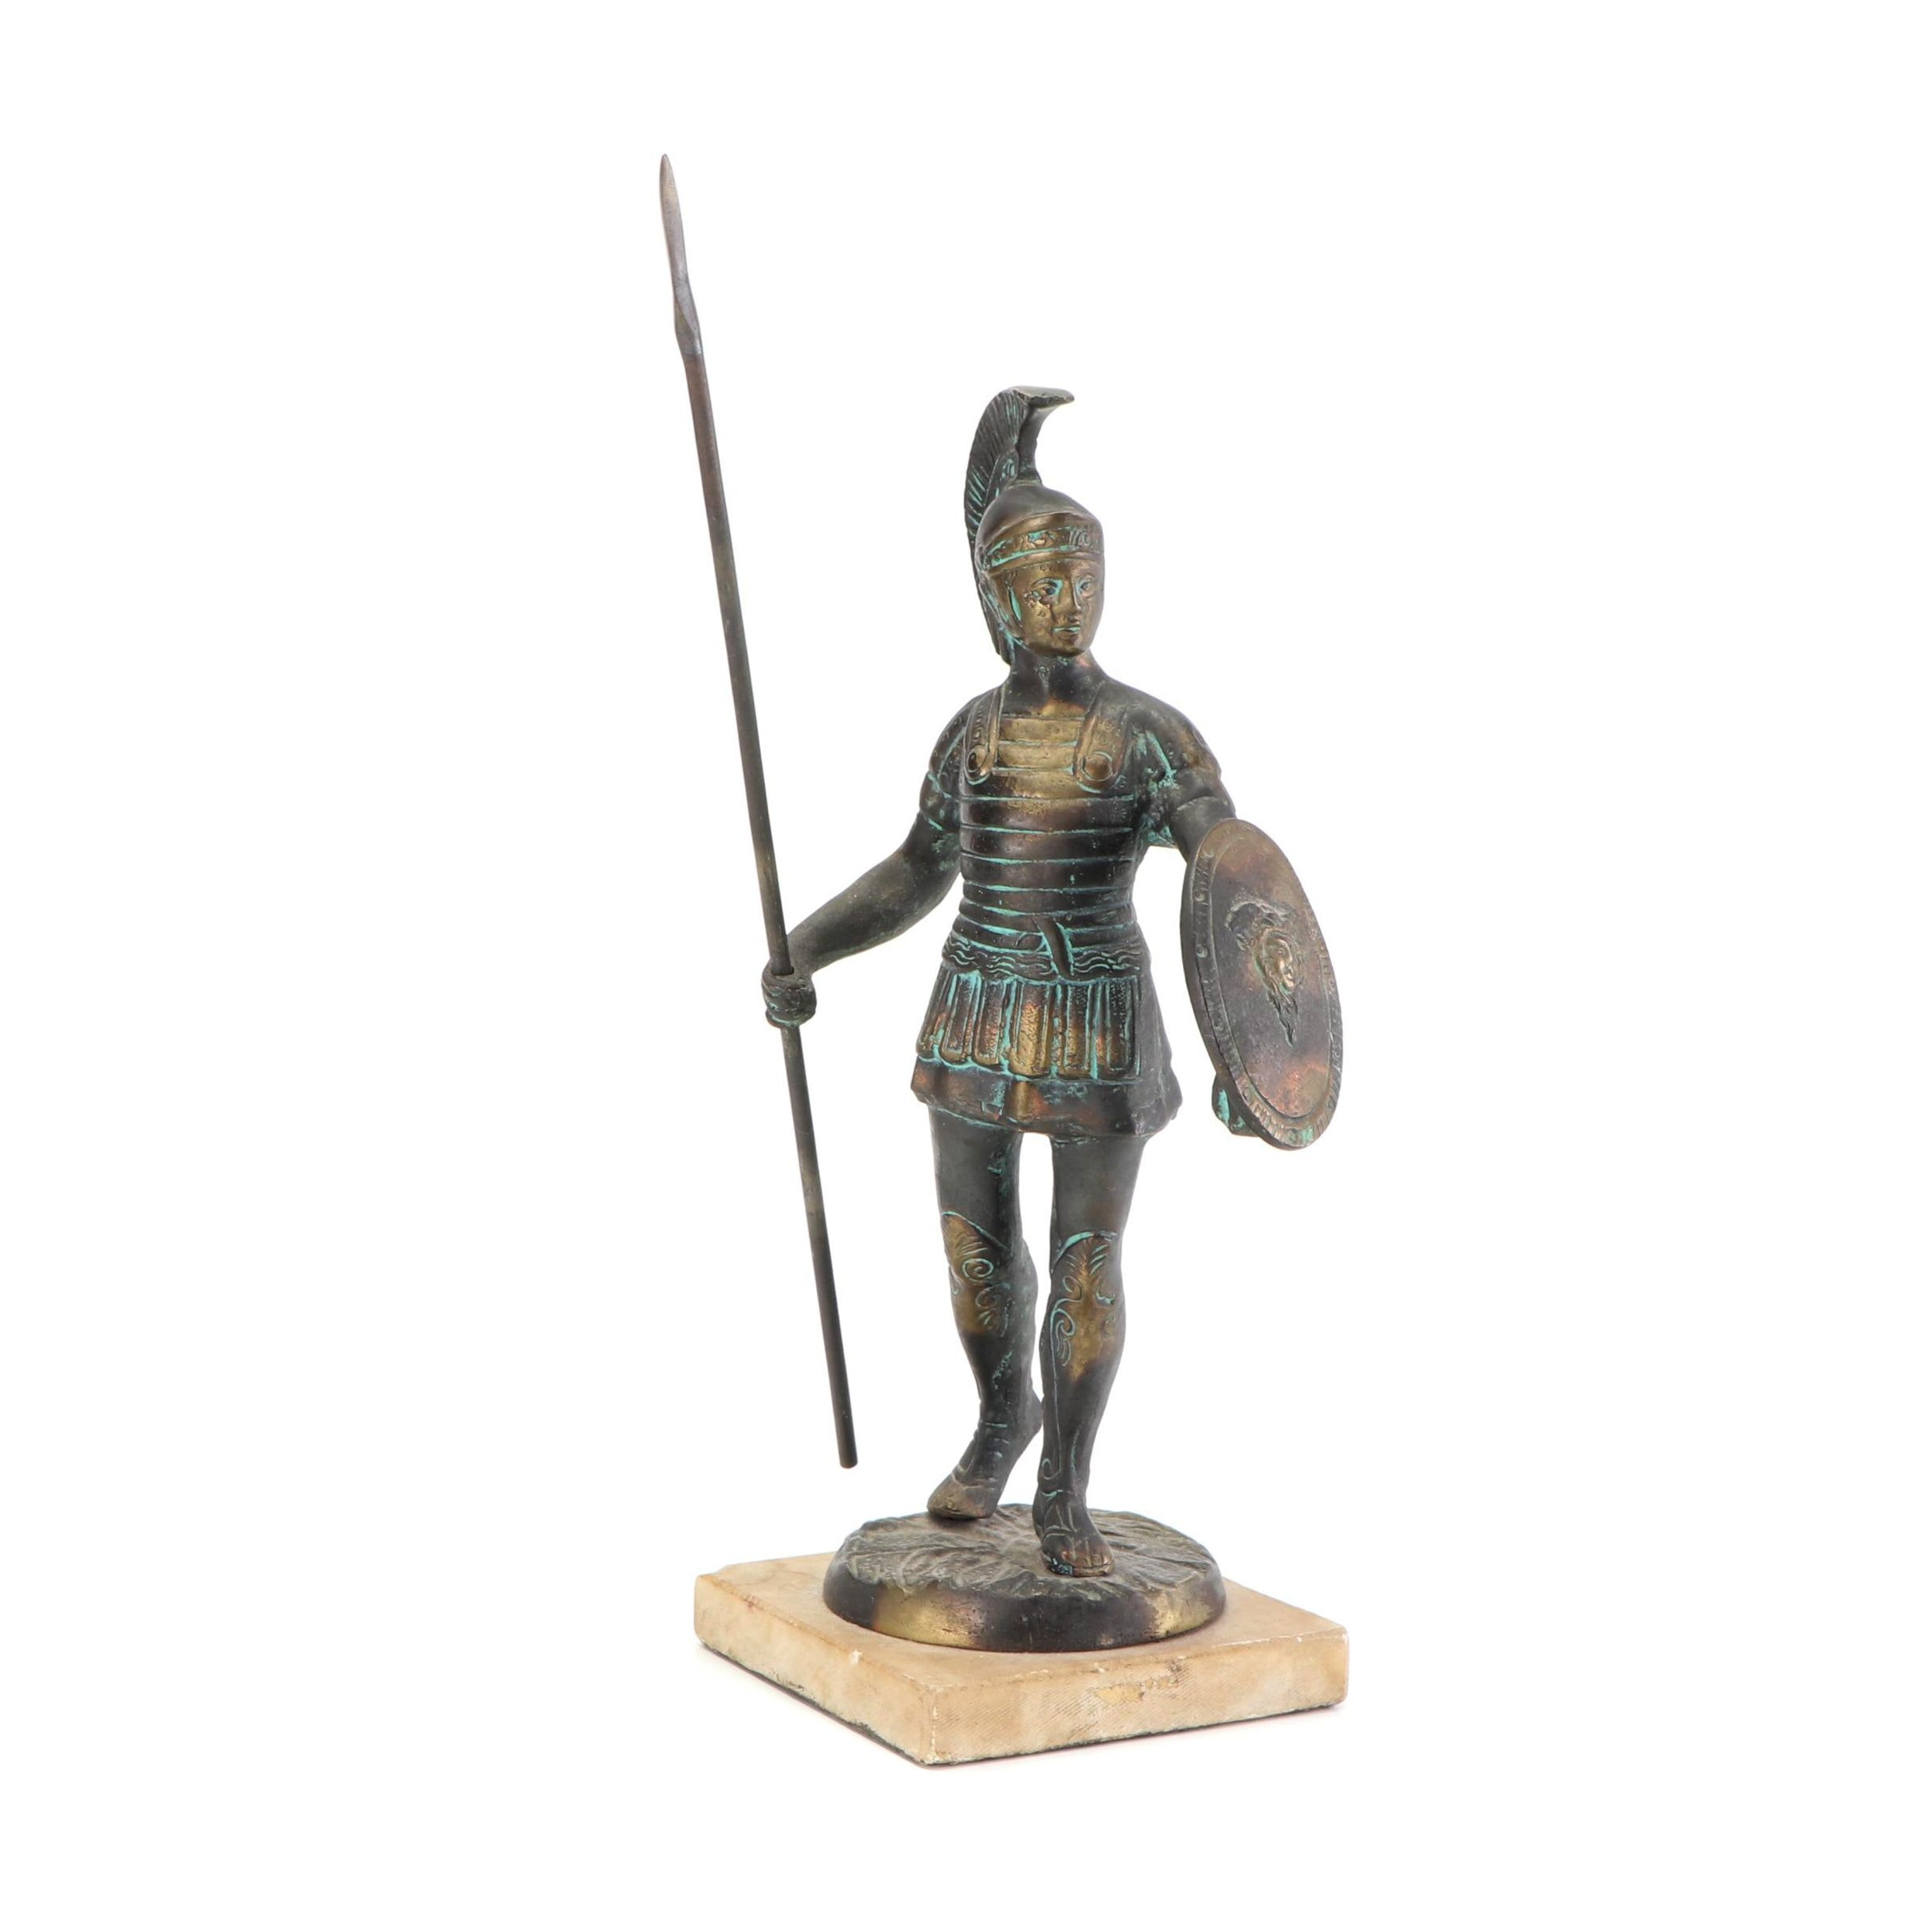 Trojan Soldier Brass Statue on Marble Display